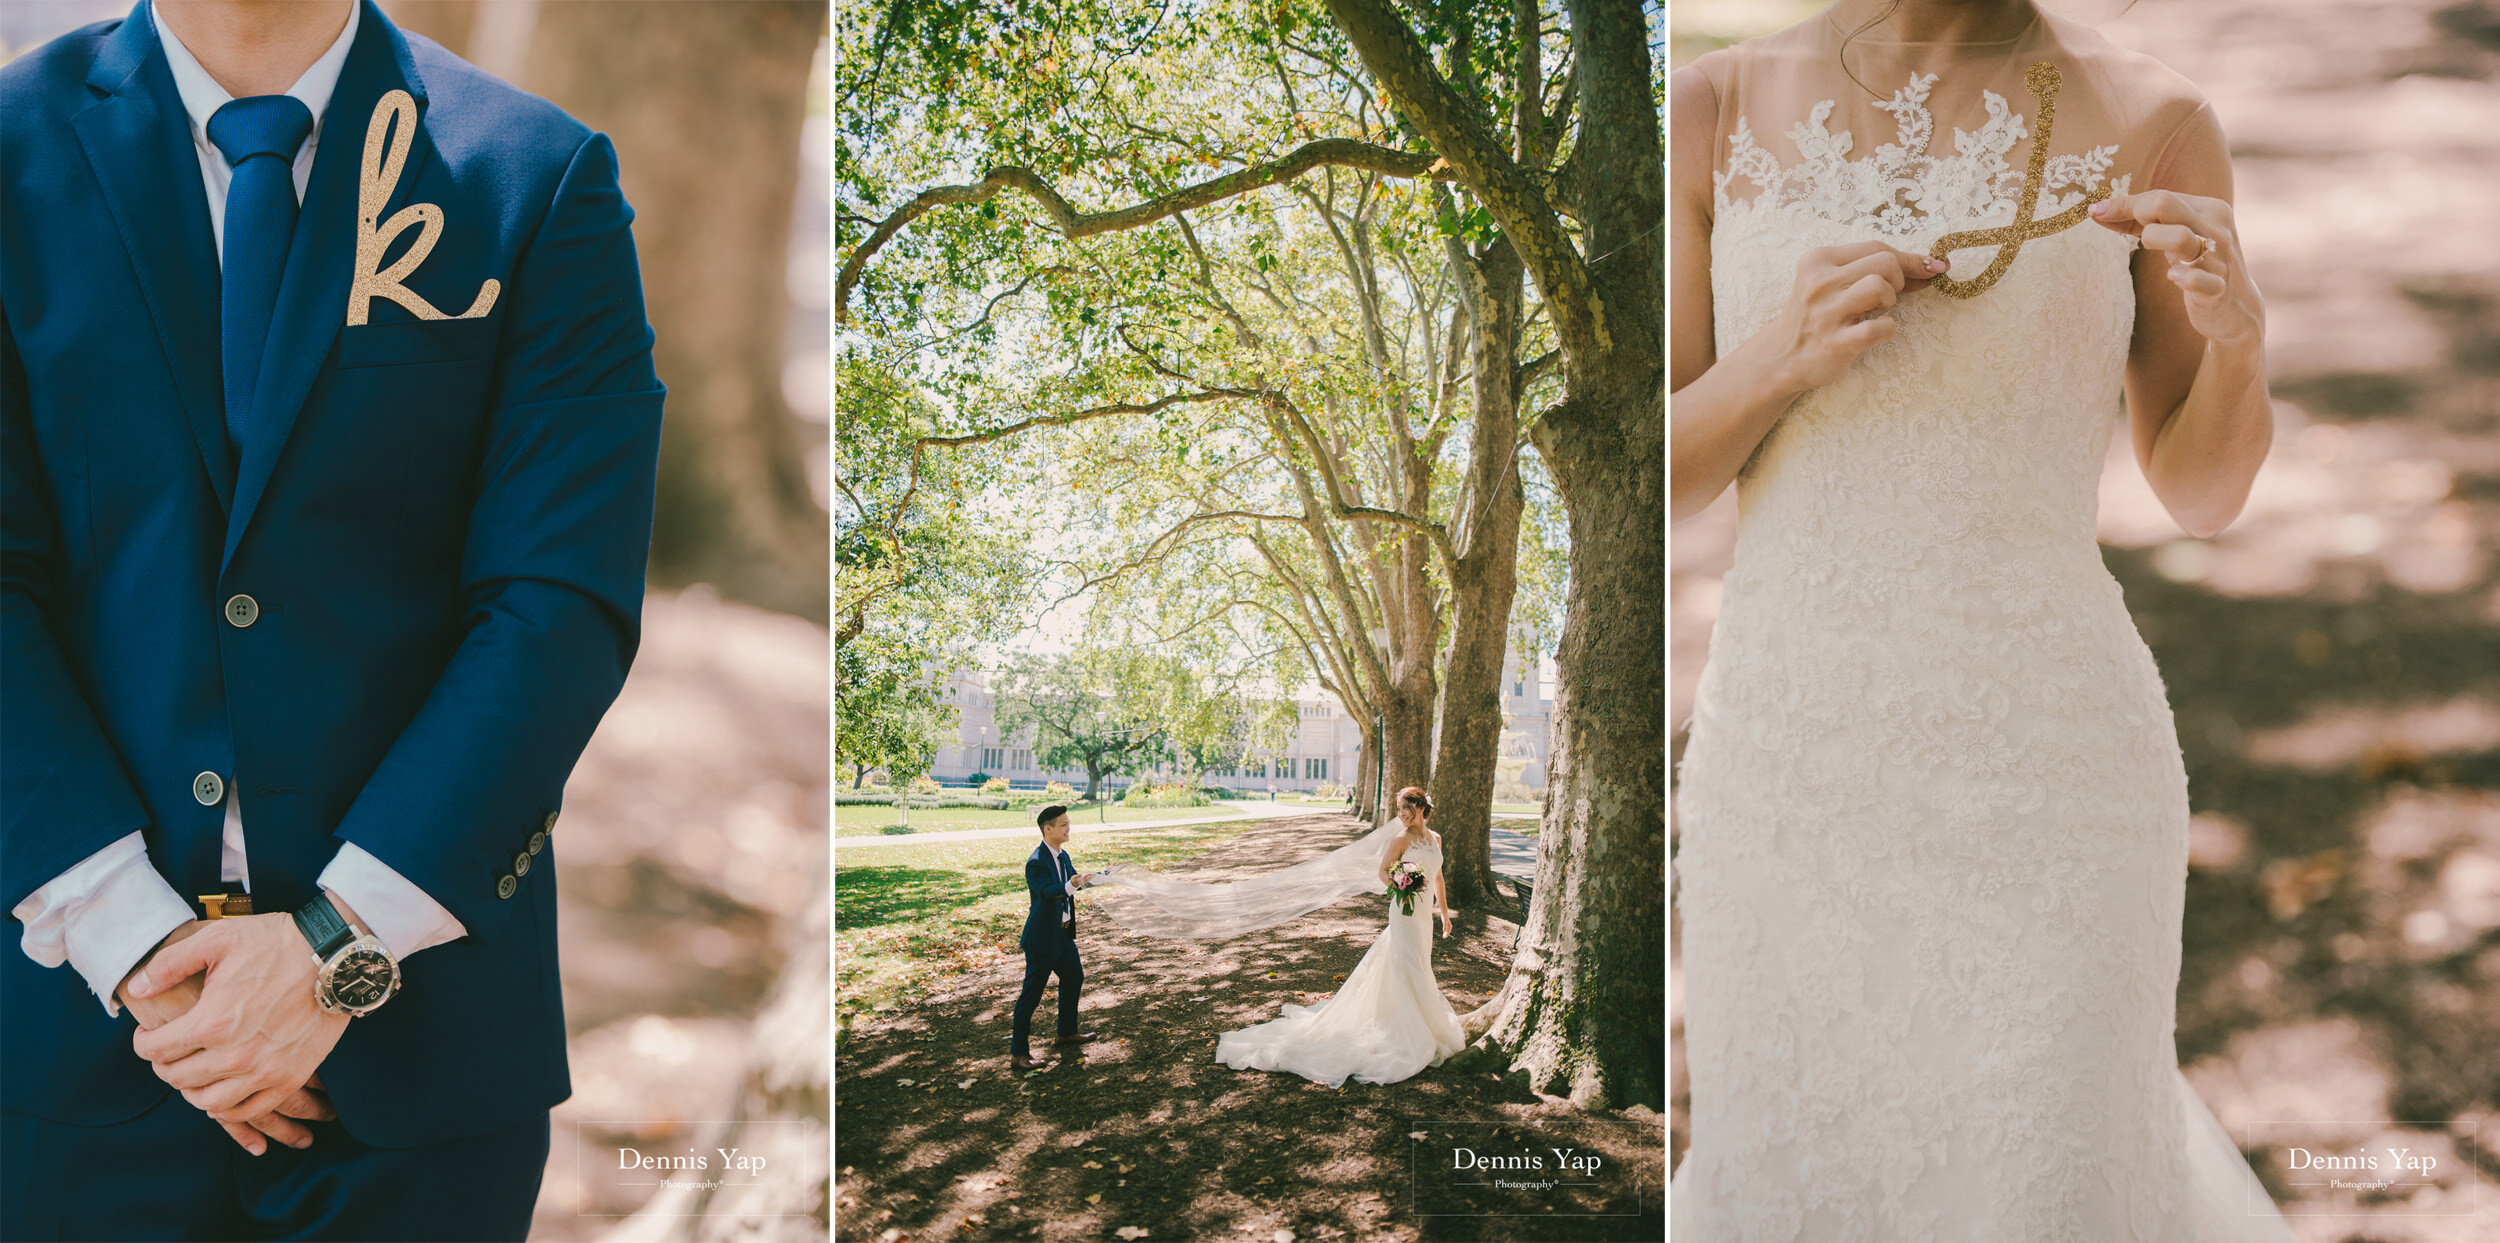 kevin junie melbourne pre wedding lifestyle natural dennis yap photography malaysia top wedding photographer-4.jpg